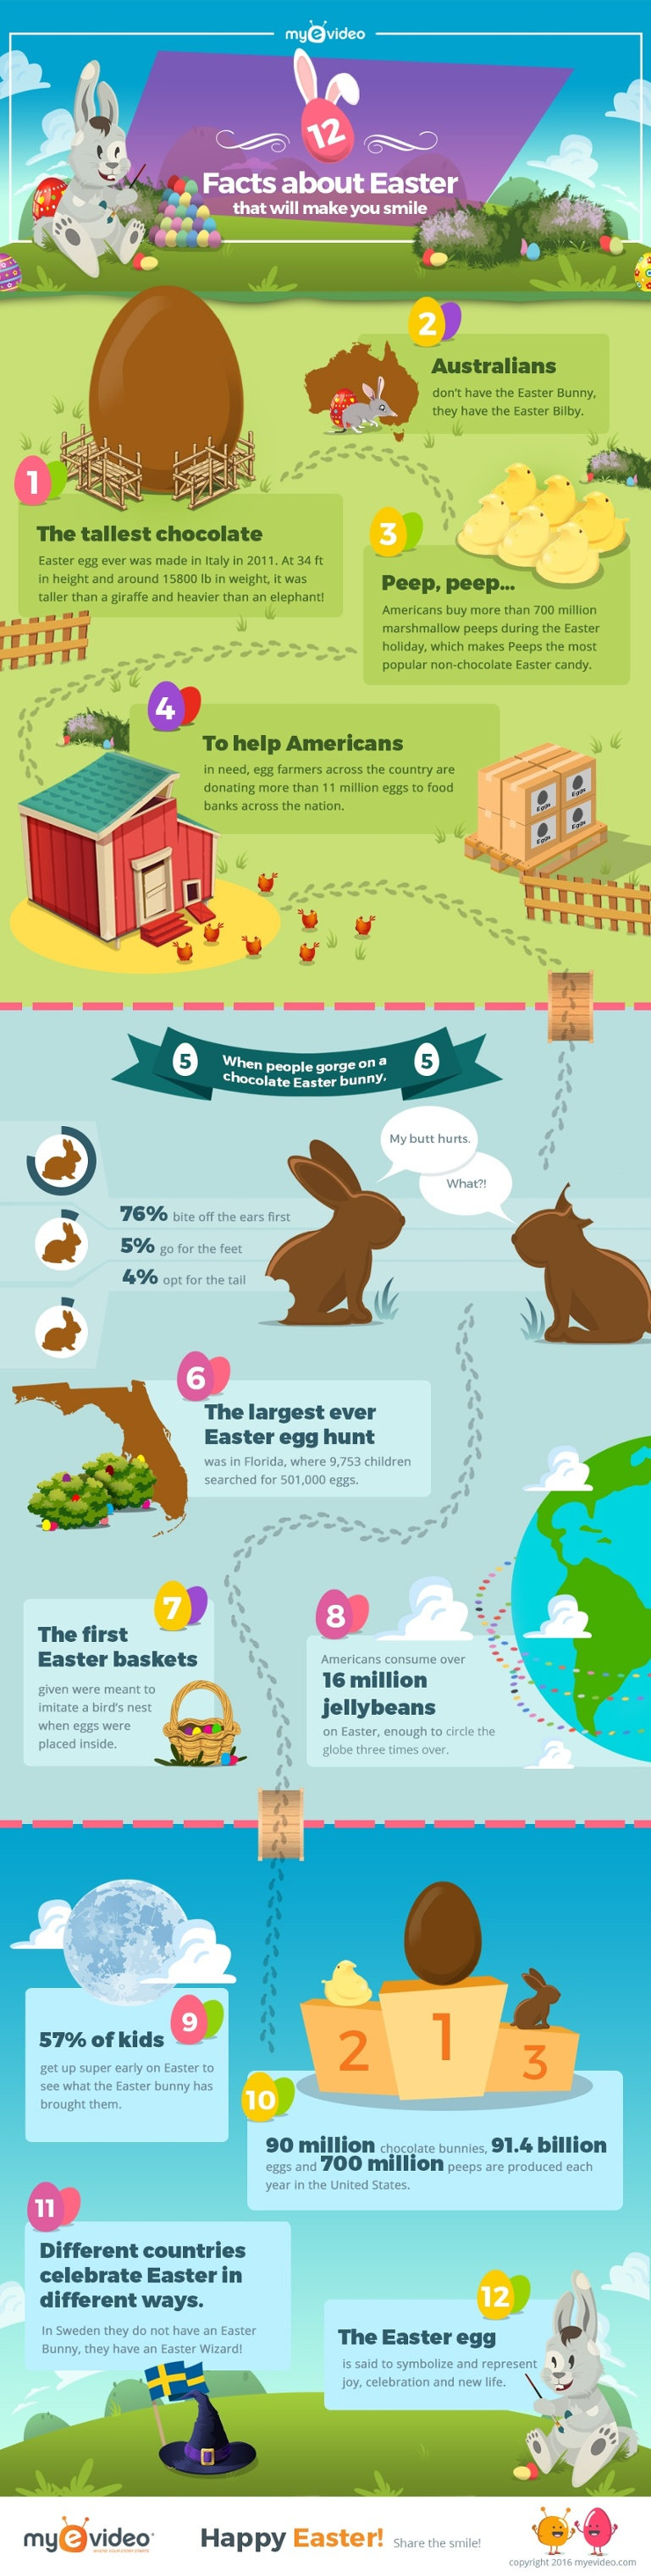 12 Facts About Easter That Will Make You Smile